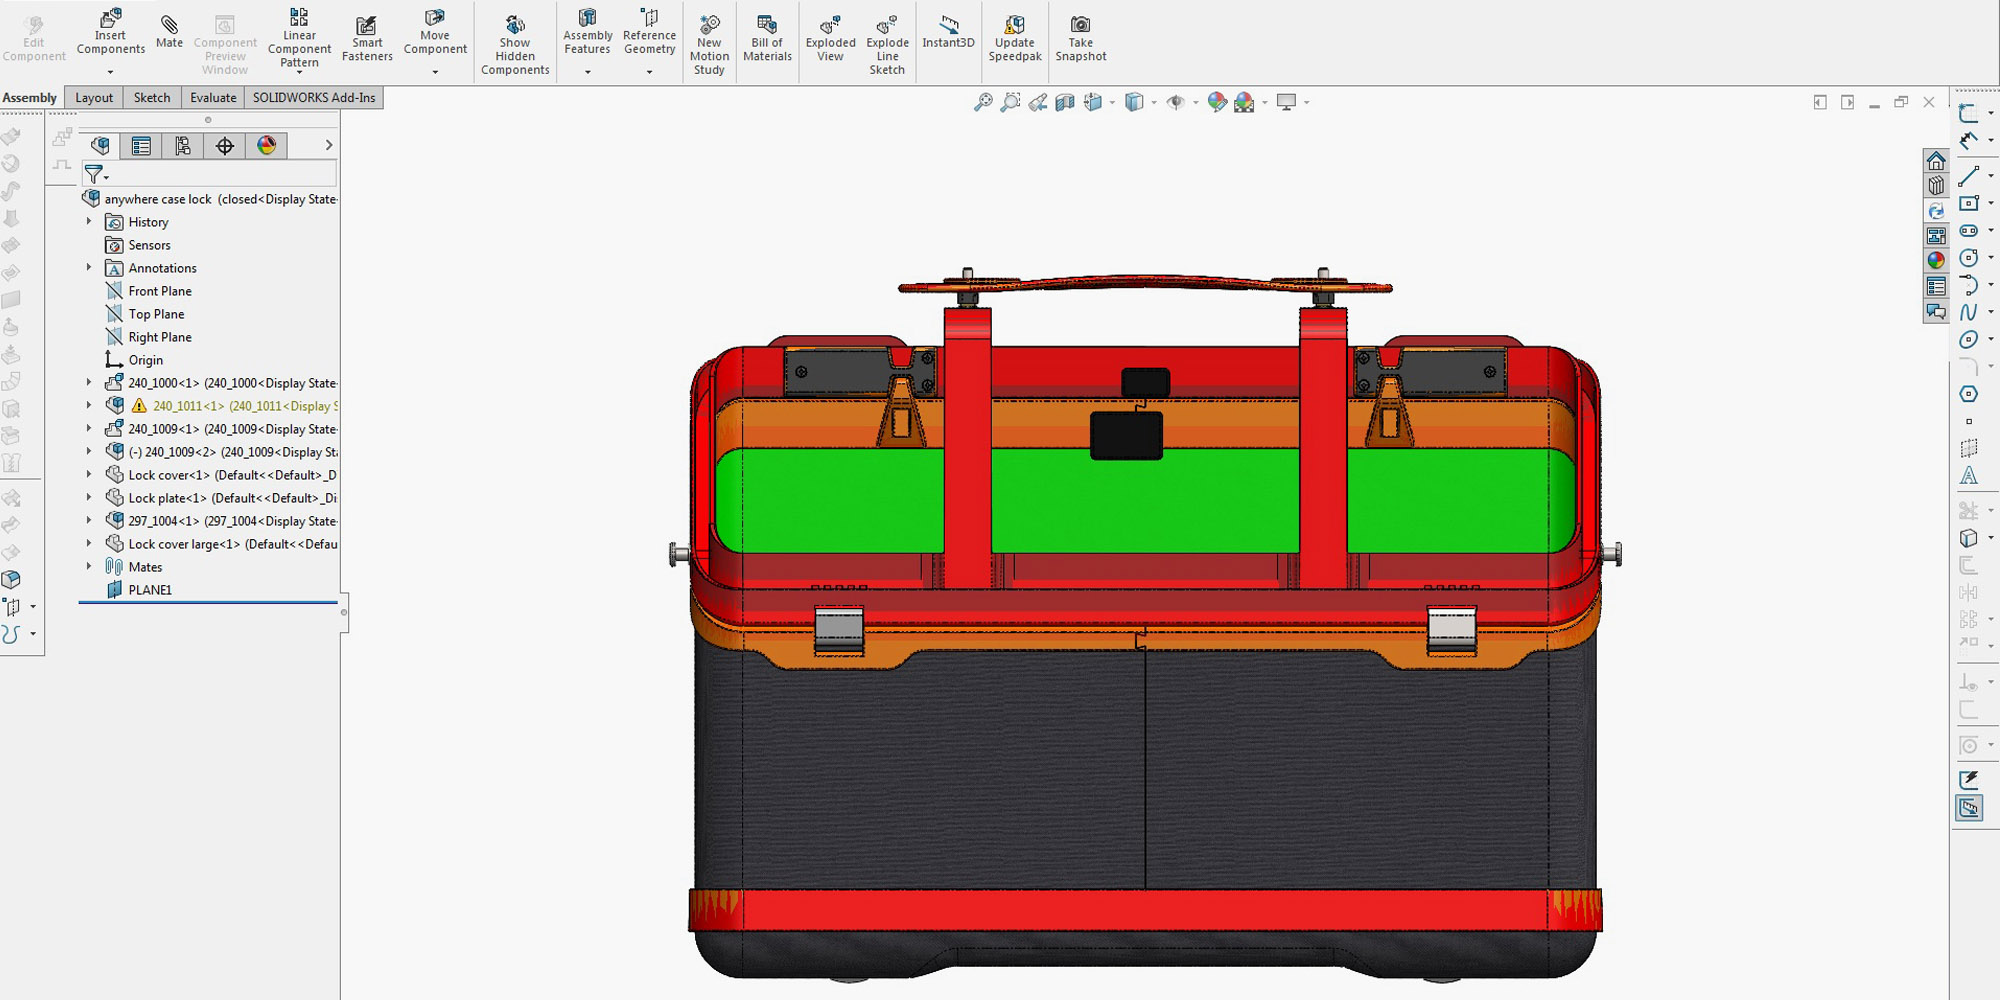 Jones-and-Partners-Anywhere-case-solidworks.jpg